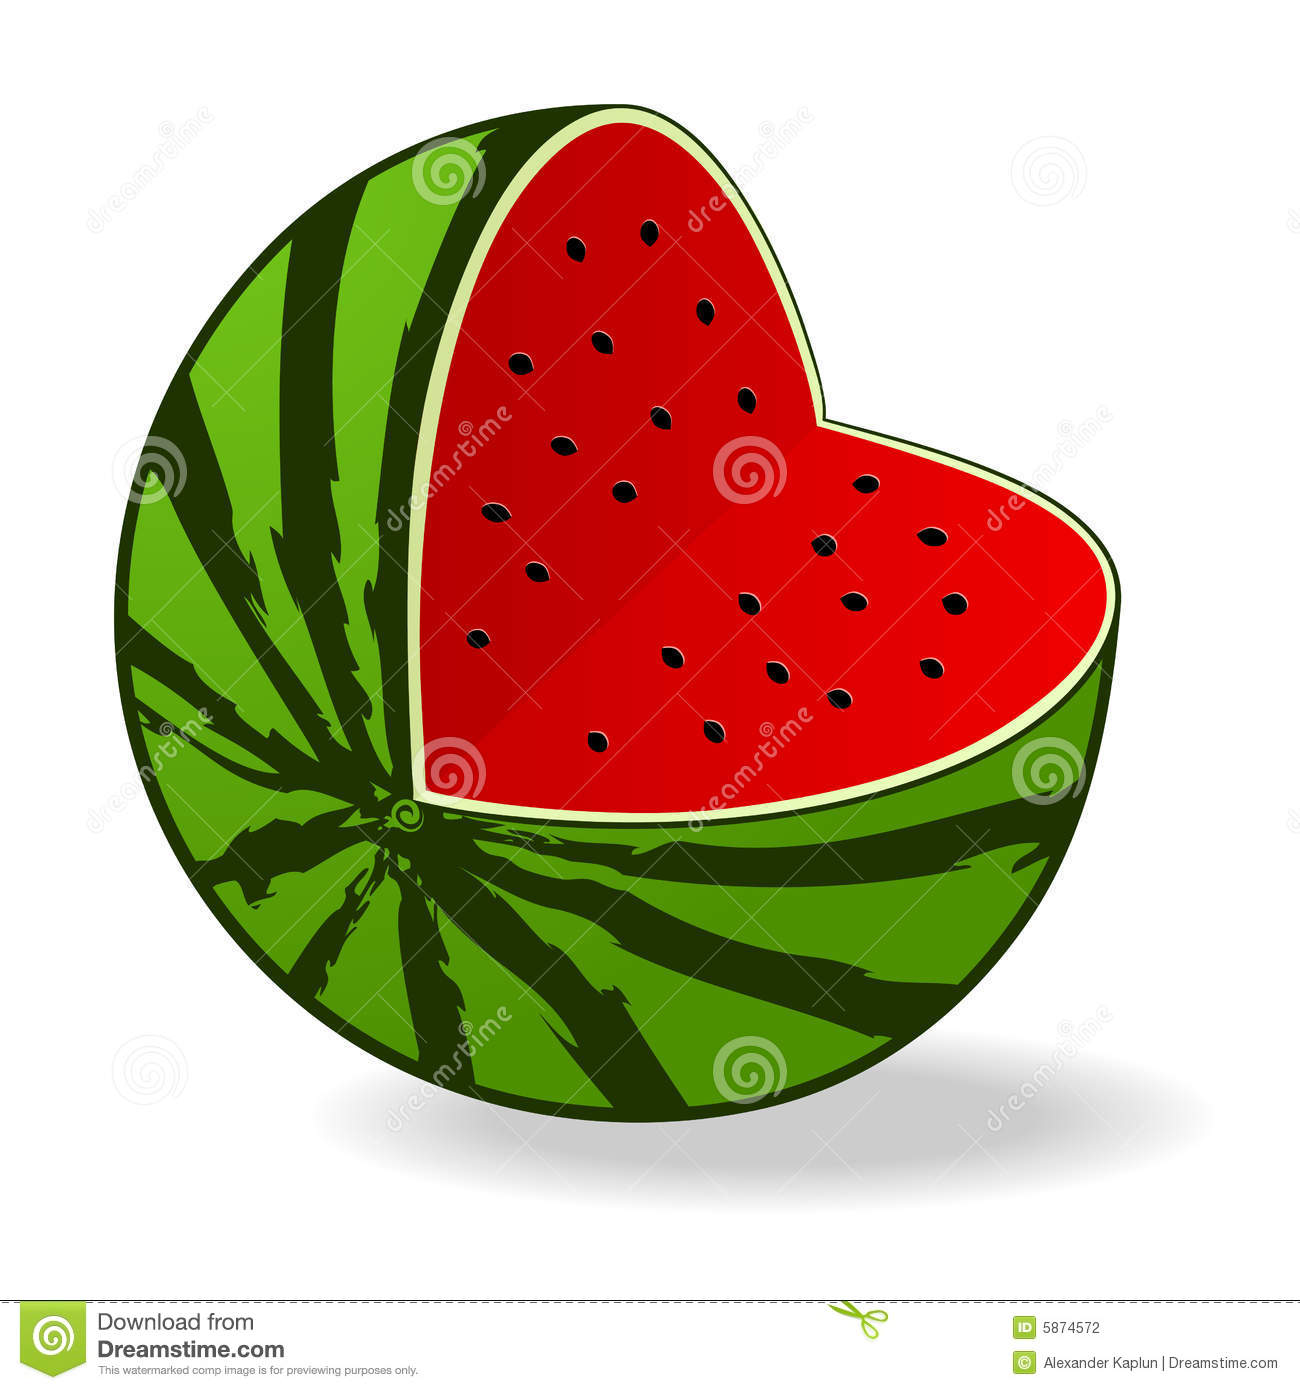 Watermelon clipart watermelon seed Images Panda Clipart Clipart Clipart